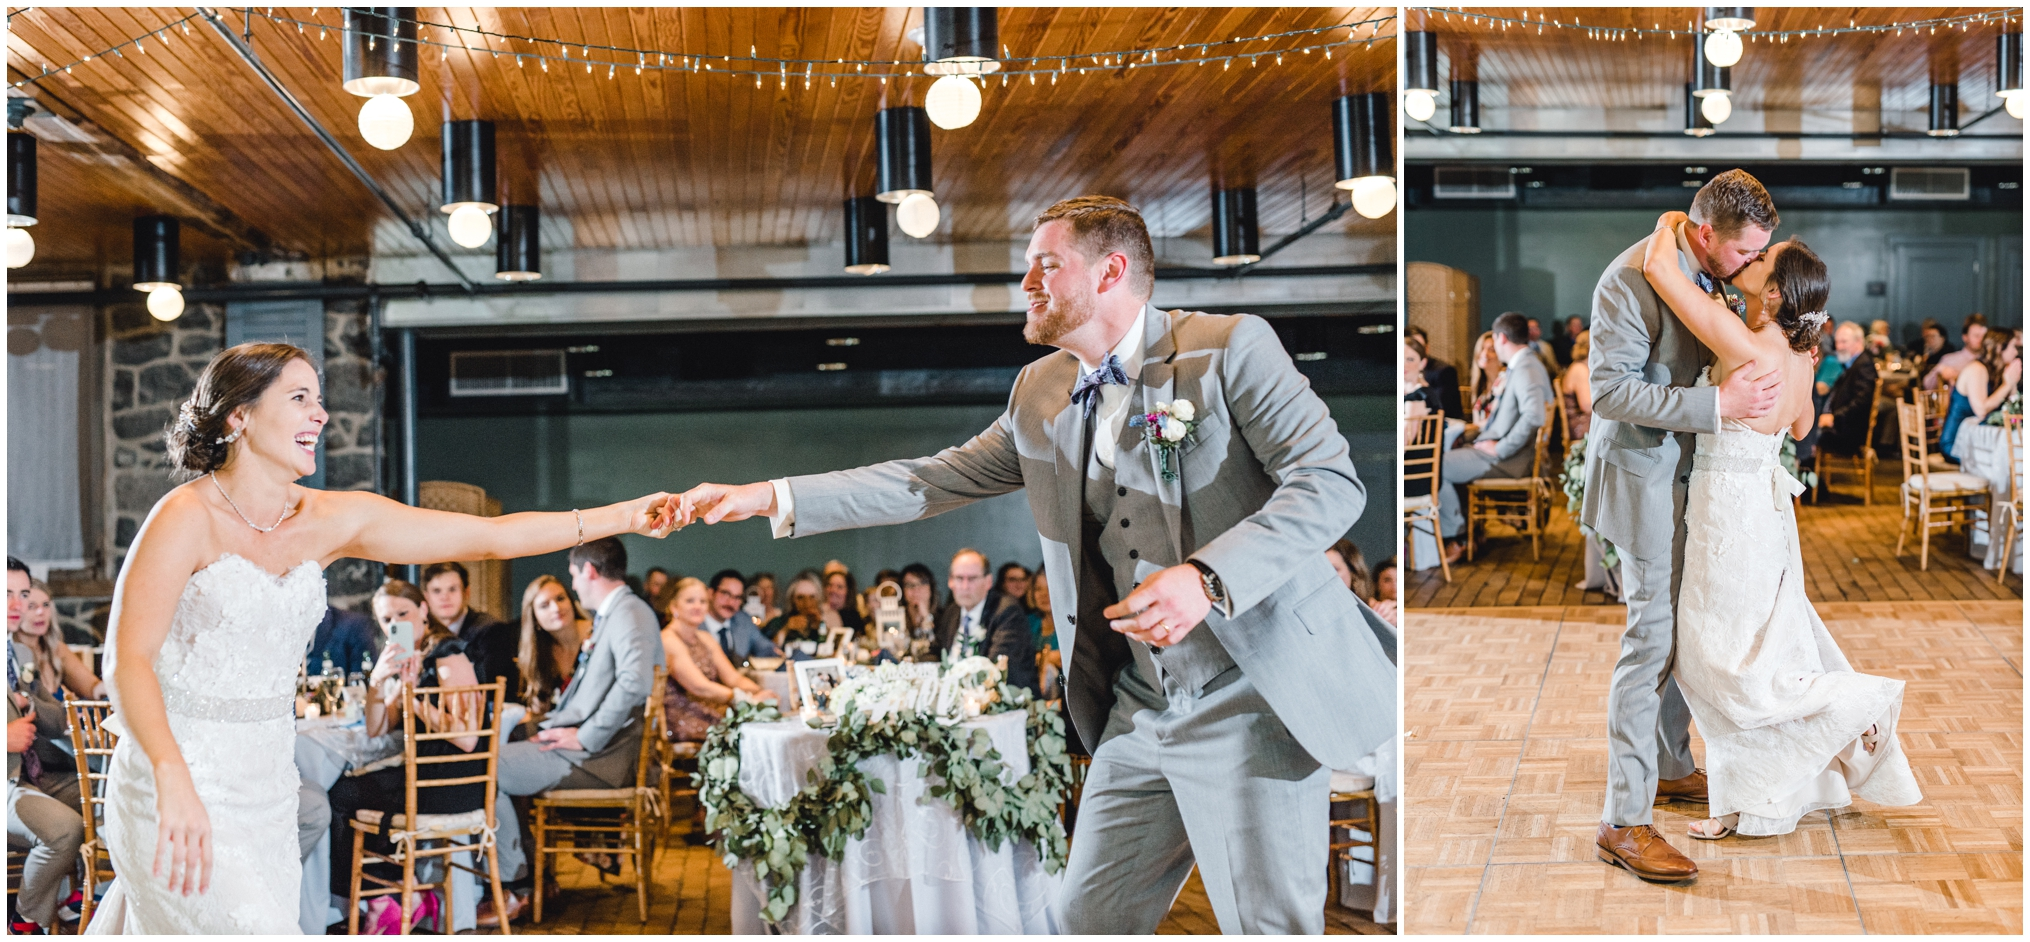 Krista Brackin Photography | April Wedding at The Carriage House at Rockwood Park_0107.jpg